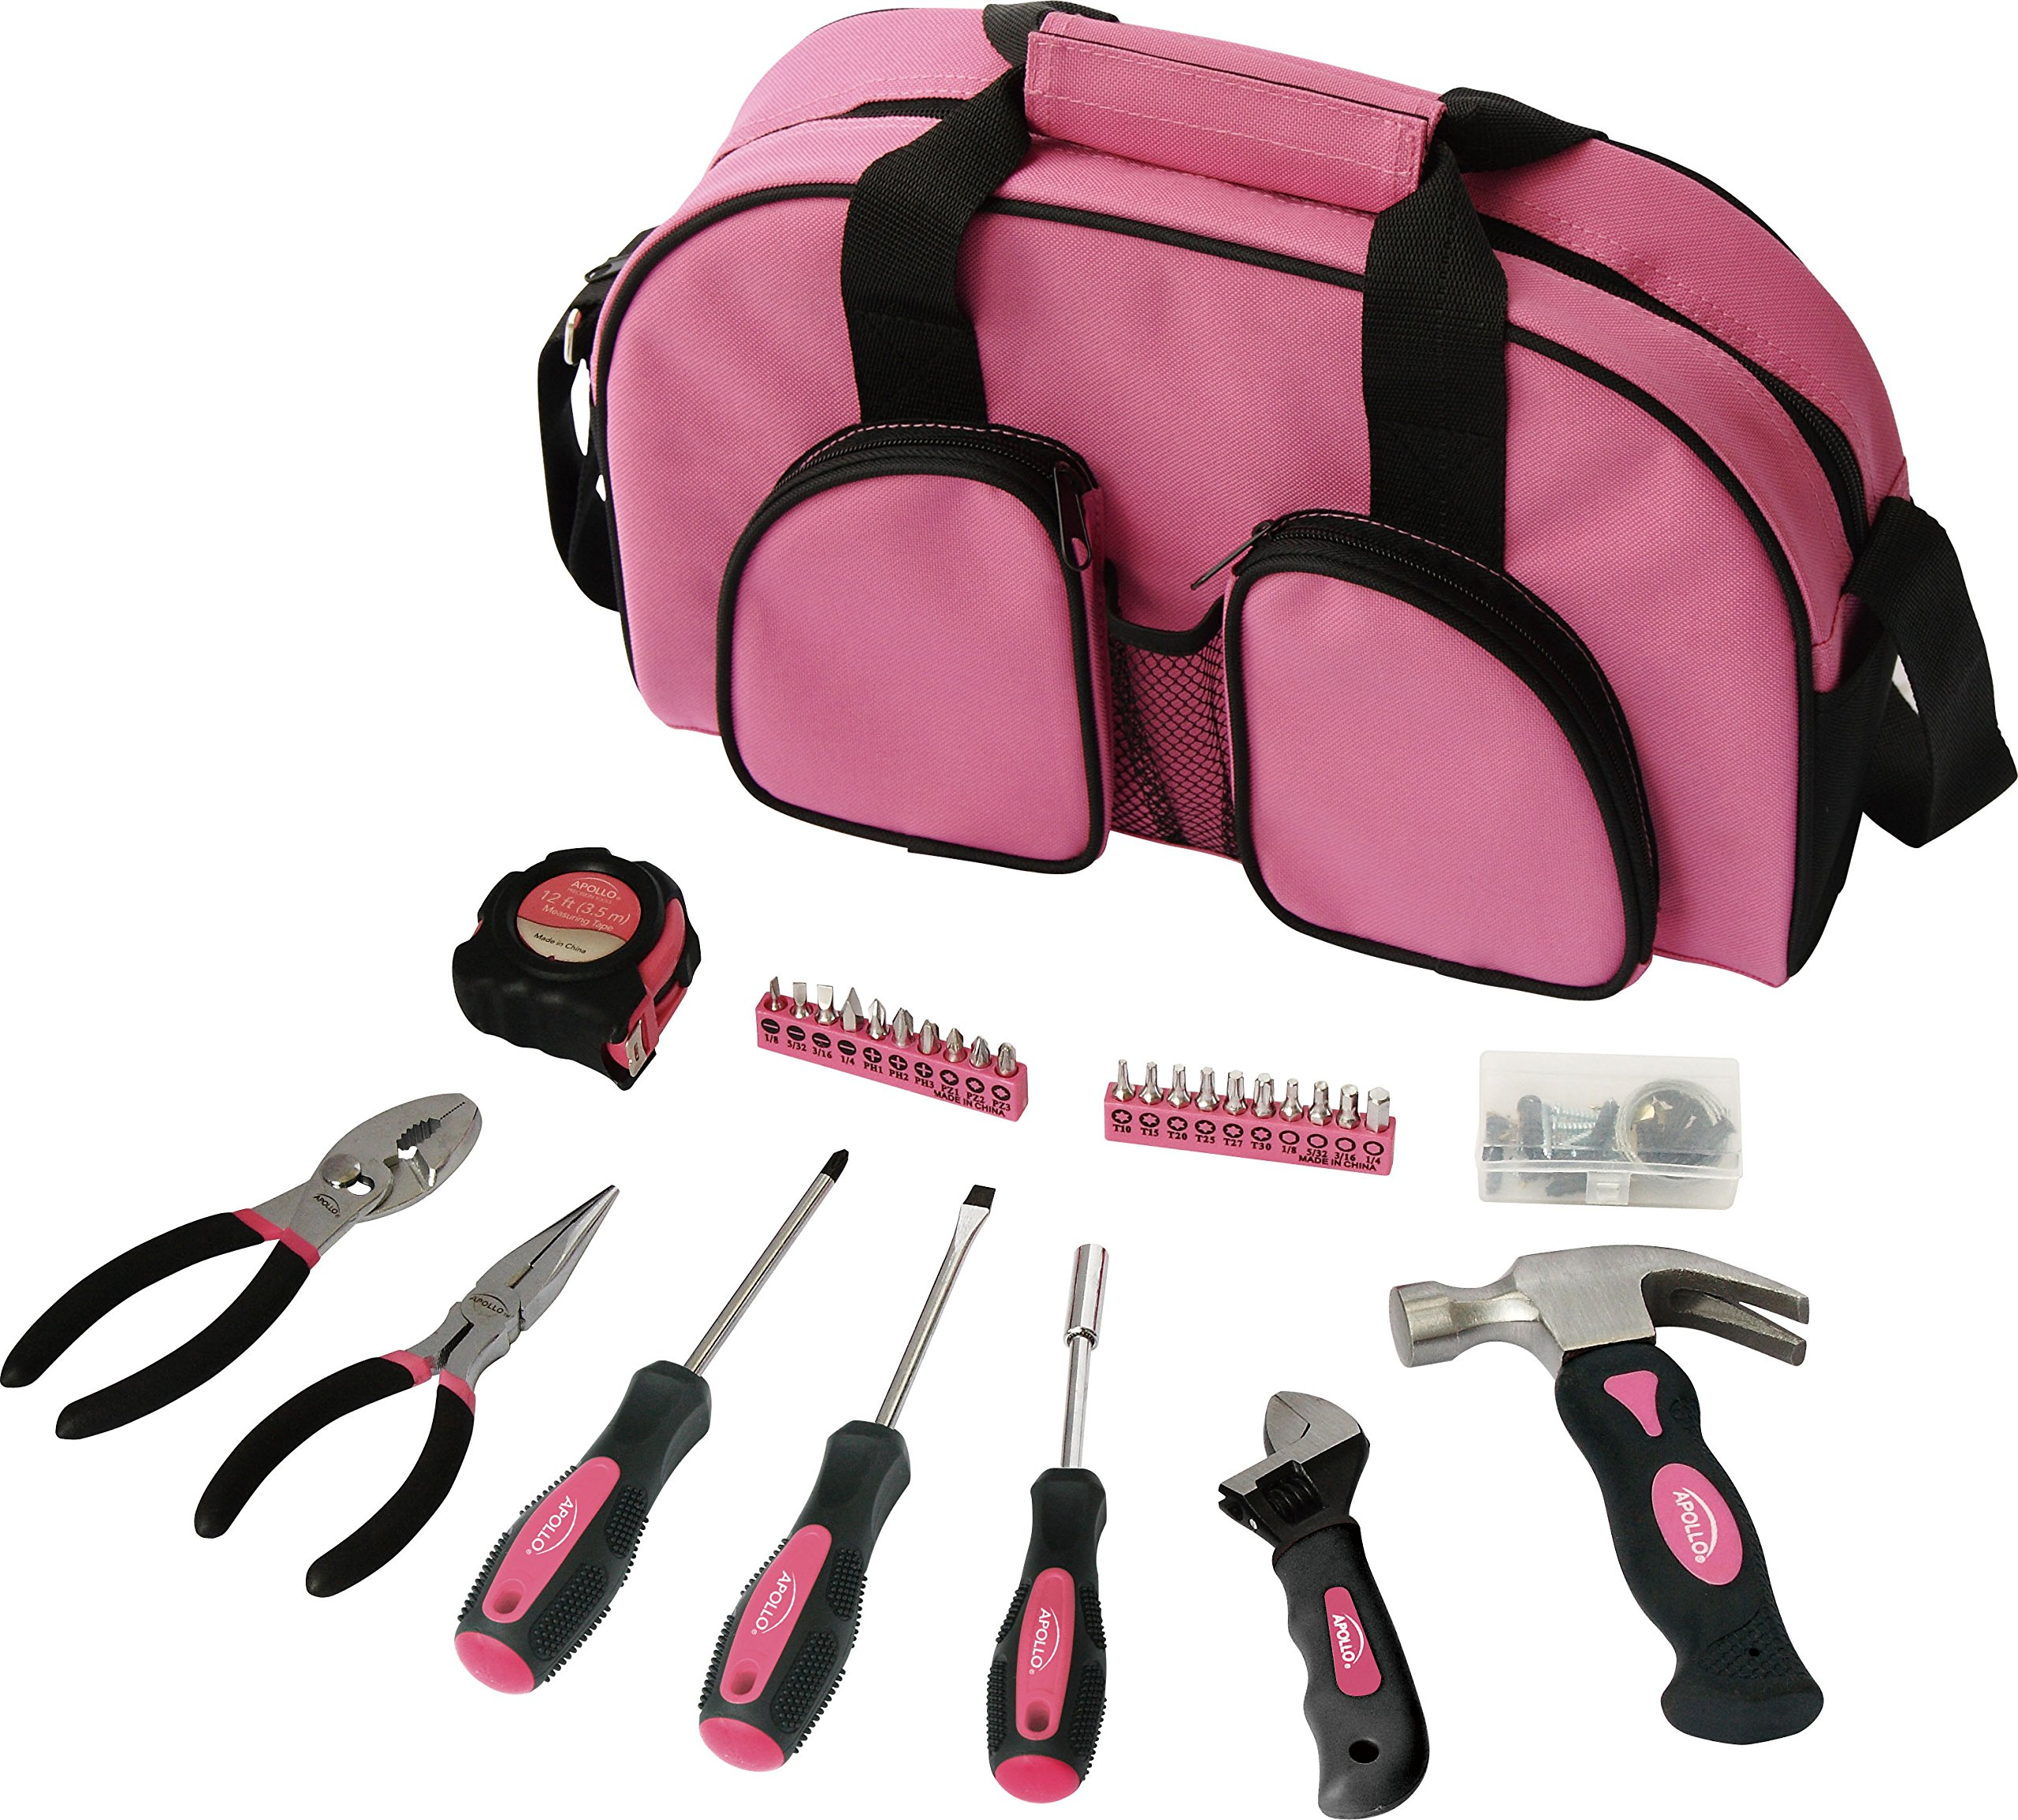 Apollo Precision Tools DT0423P 69-Piece Household Tool Kit, Pink, Donation Made to Breast Cancer Research by Apollo Tools